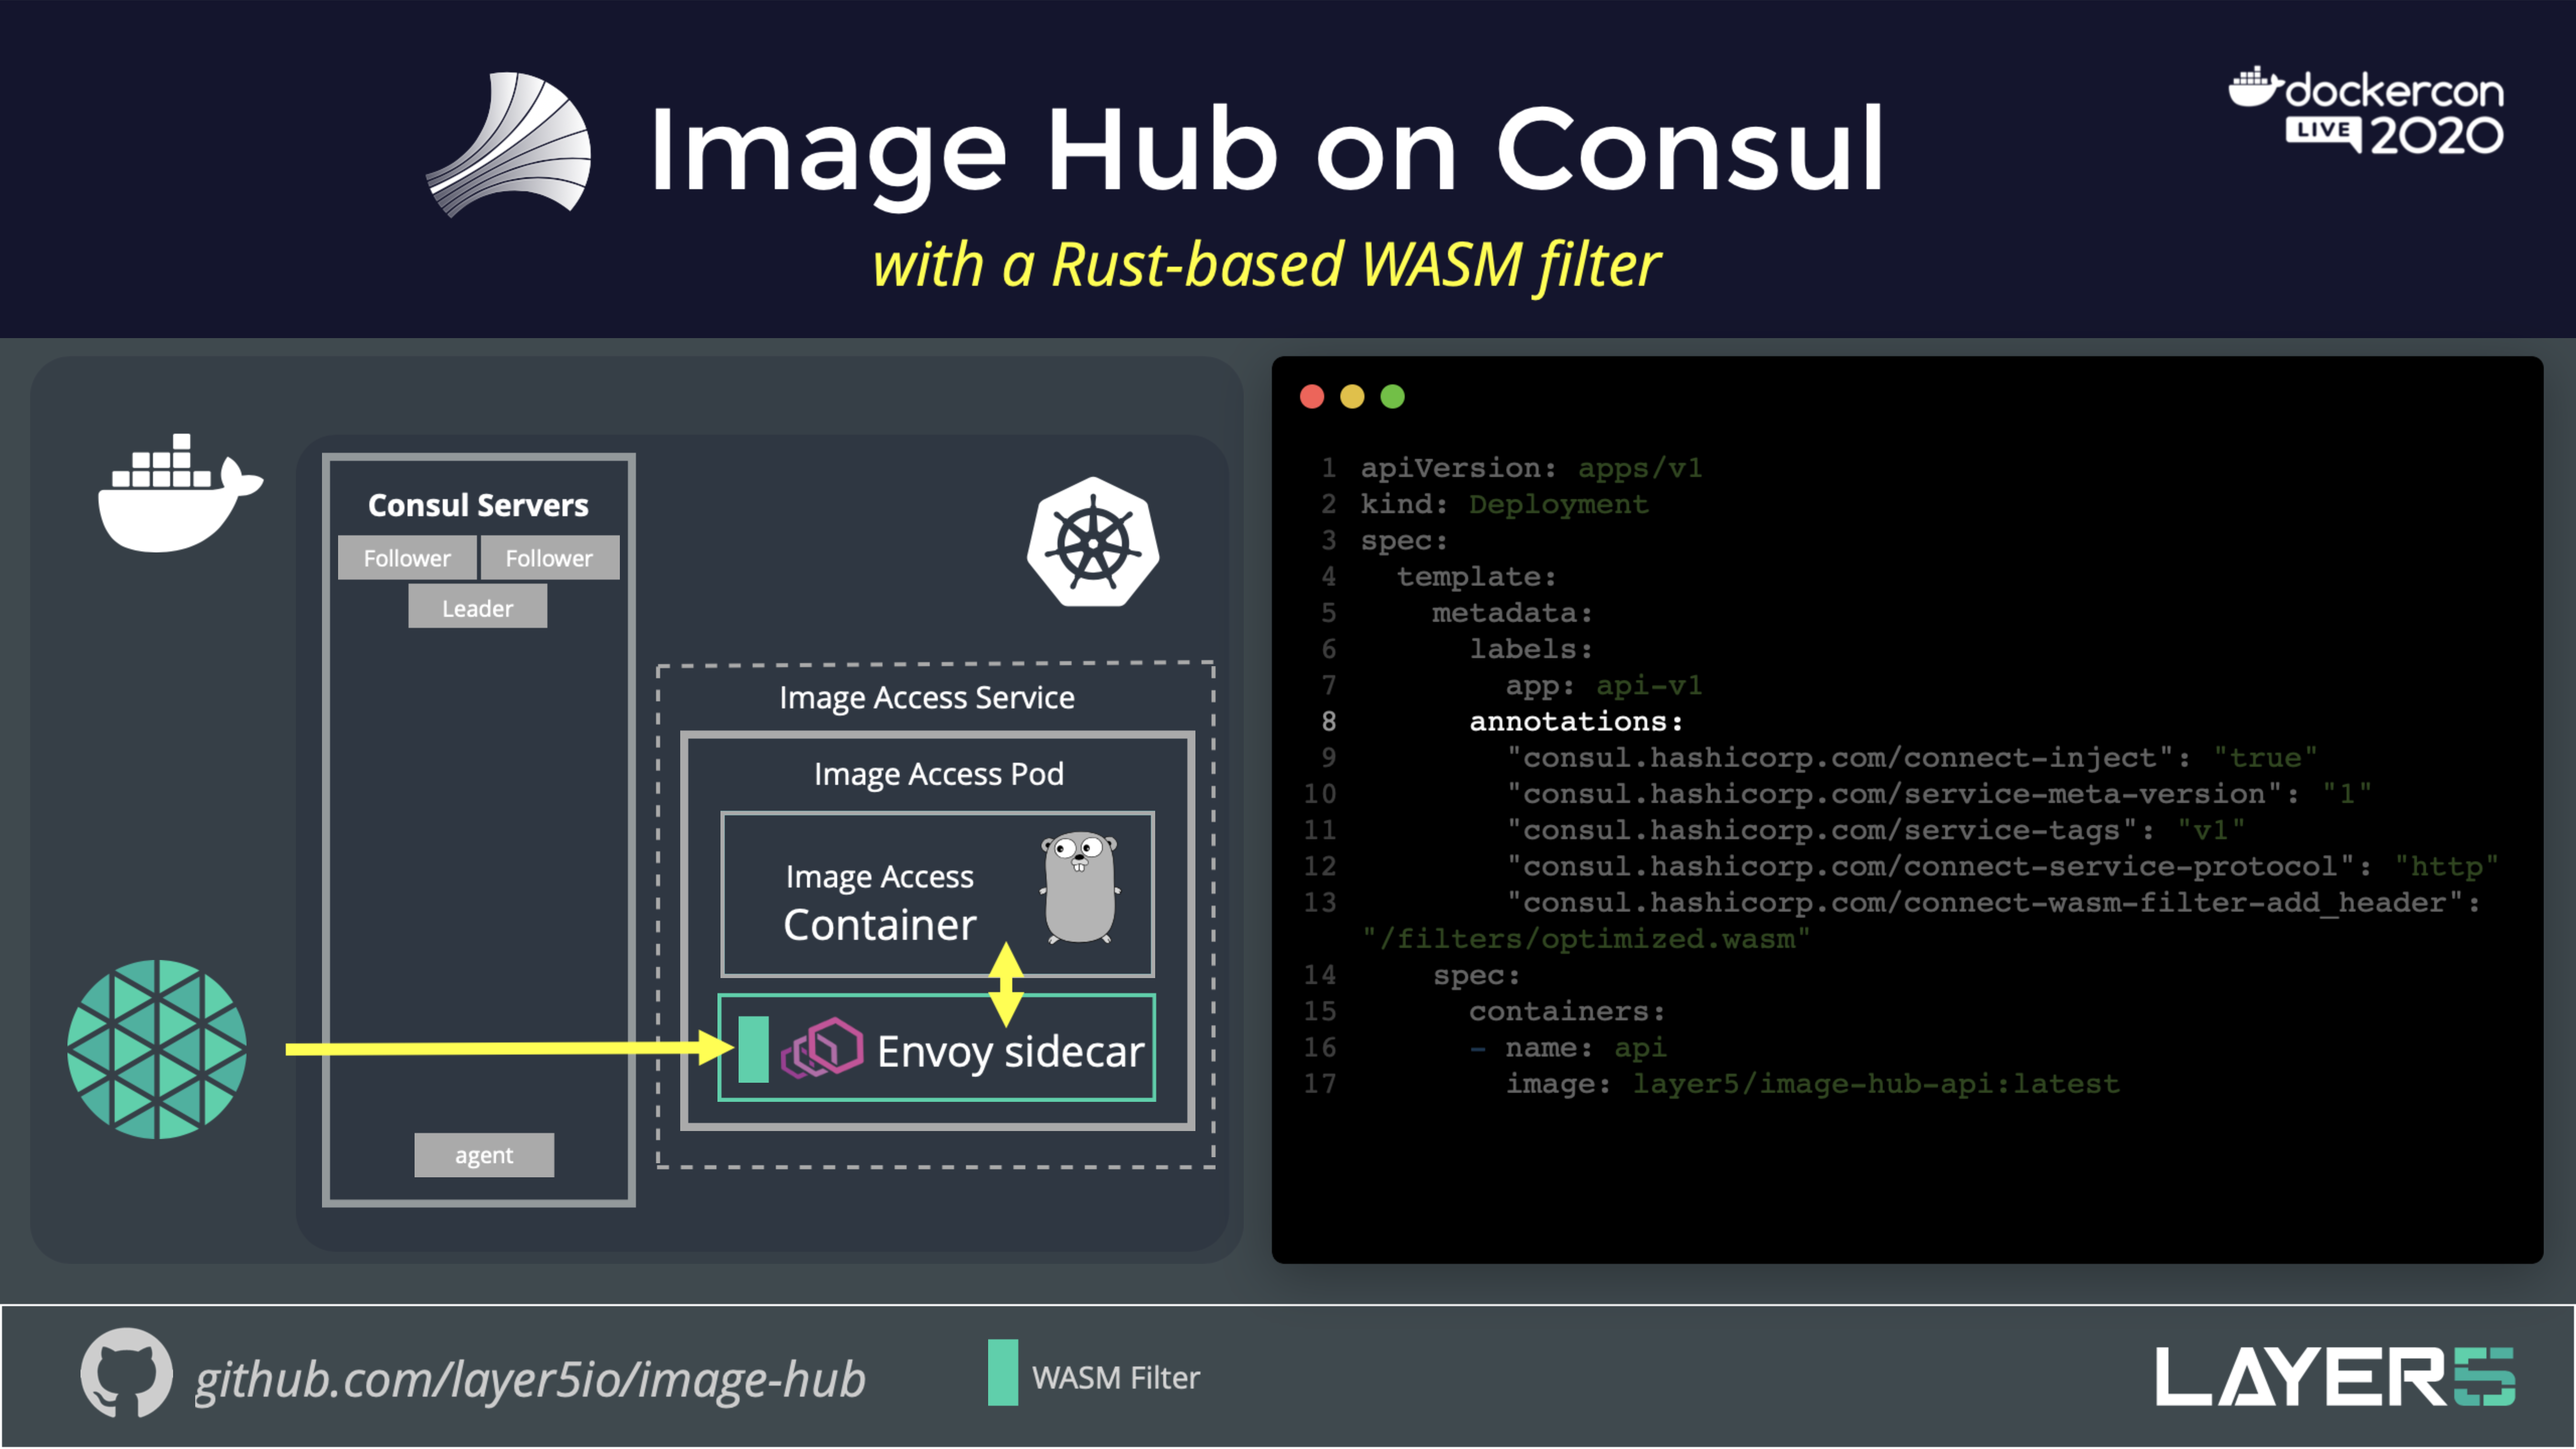 Imagehub-on-Consul